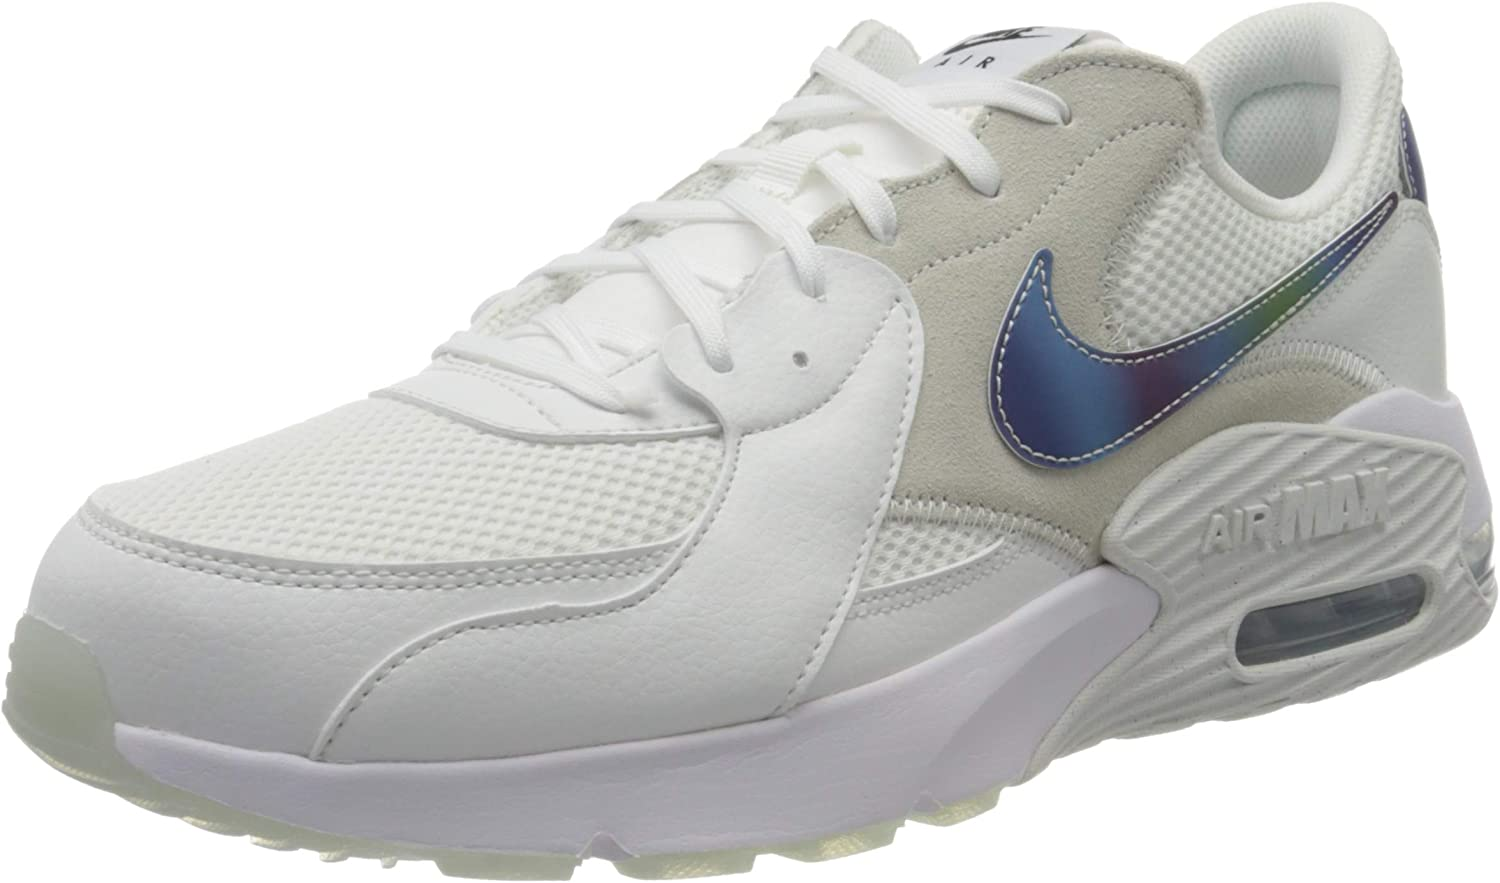 Chaussures de sport Nike Air Max Excee Chaussure de Course Homme ...